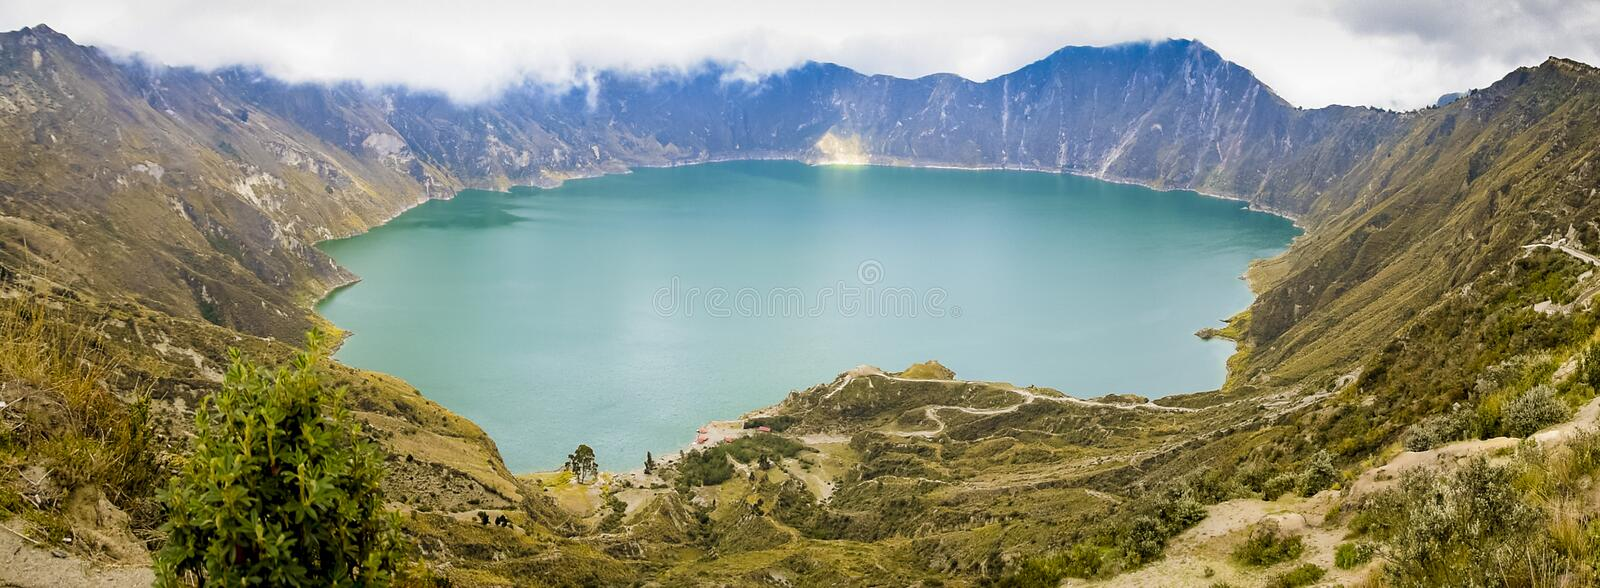 Quilotoa lake in Ecuador. A panoramic view of Quilotoa lake, which is a volcano crater in the Andean Region of Ecuador royalty free stock photos